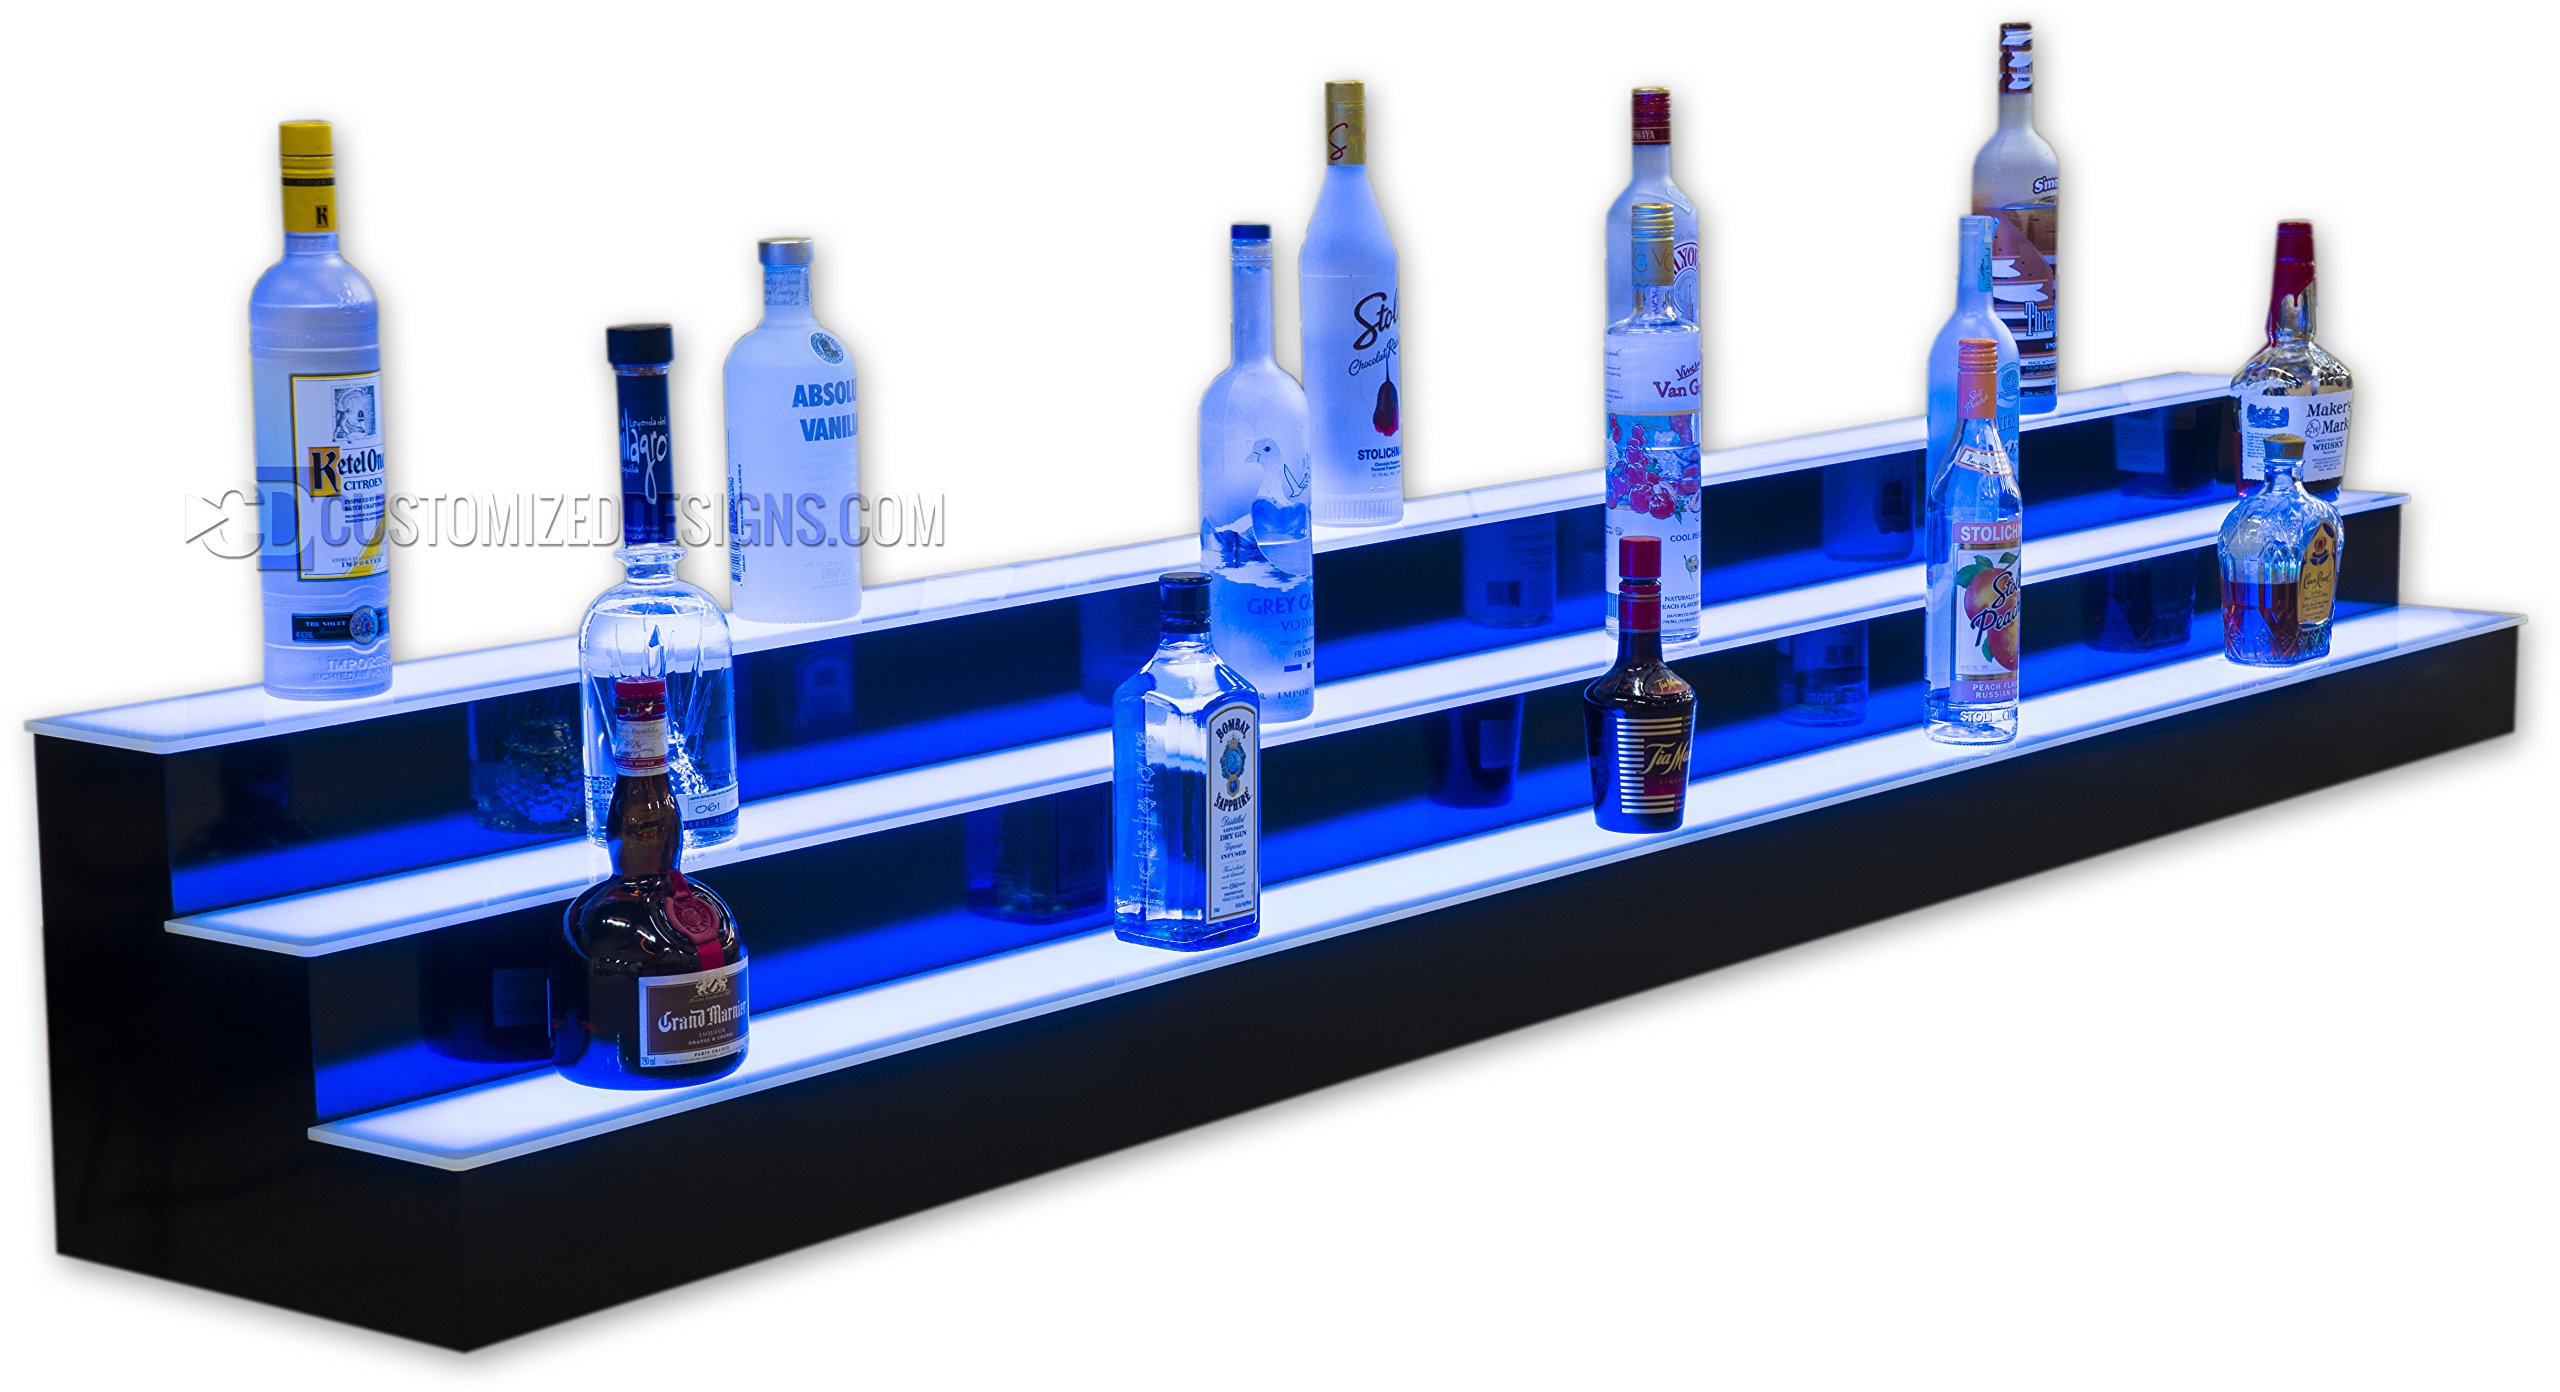 96'' 3 Tier Lighted Commercial Grade Back Bar Liquor Bottle Shelving with lights